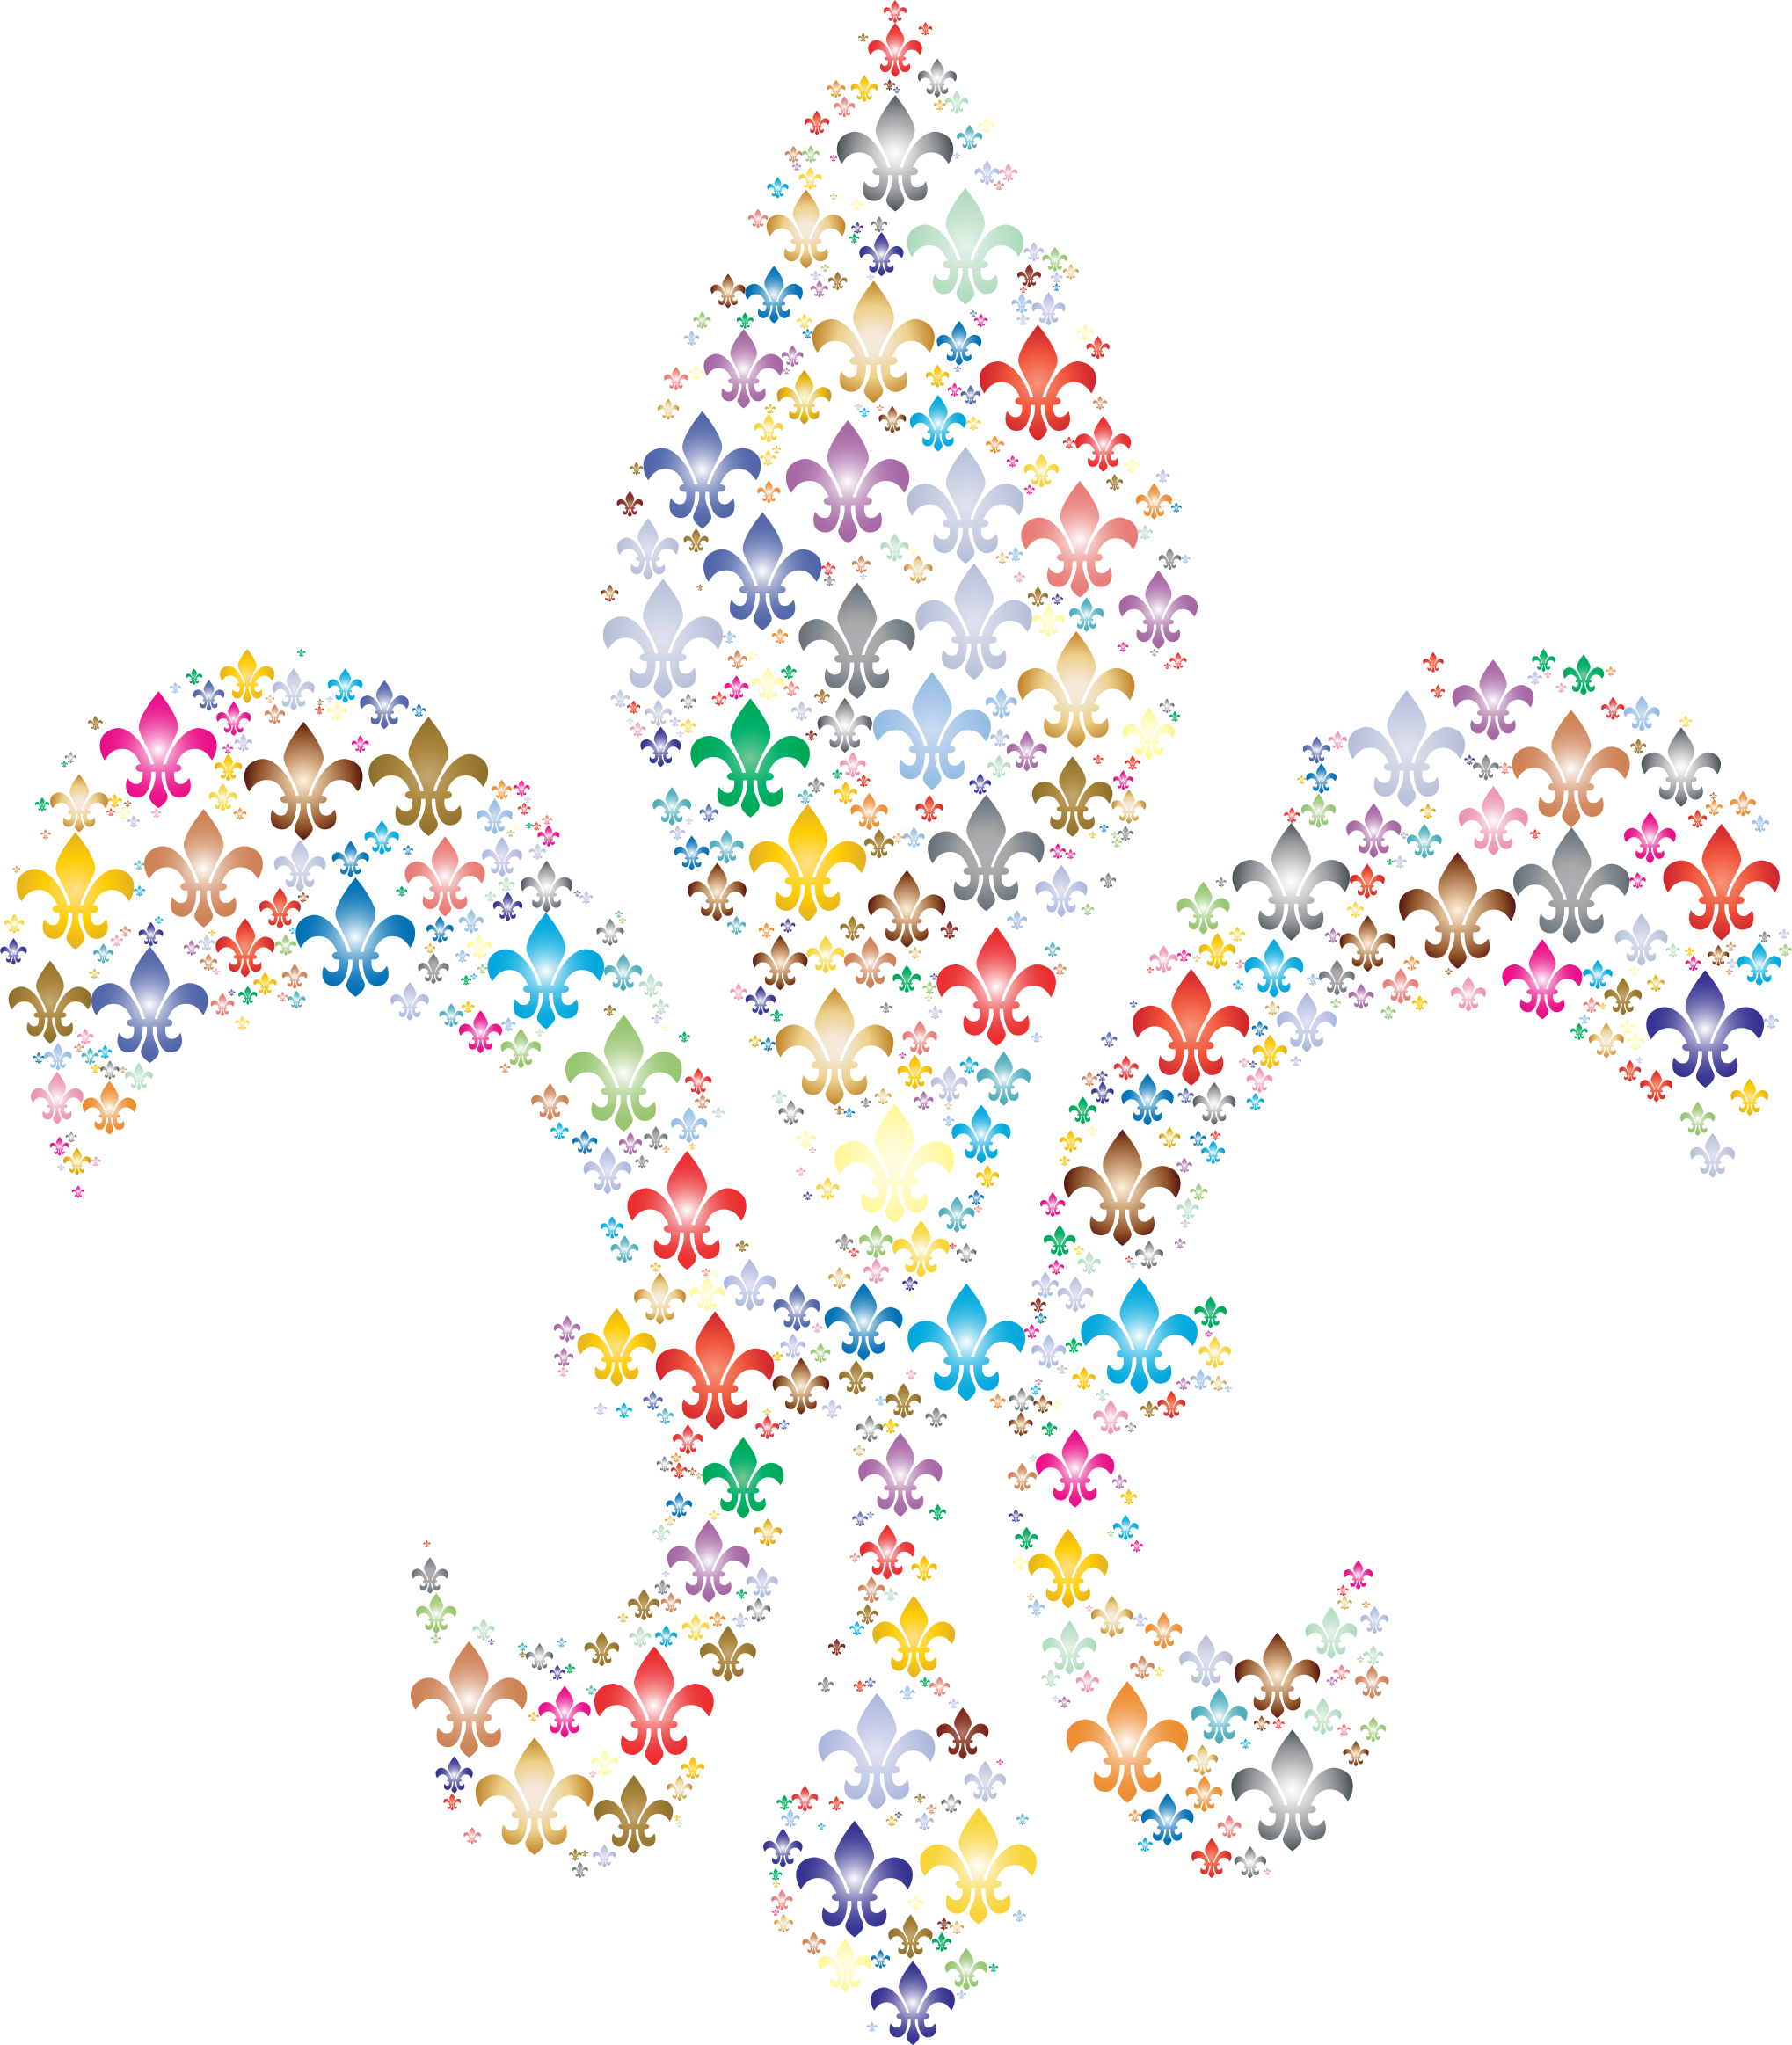 Colorful Fleur De Lis Fractal 2 by GDJ